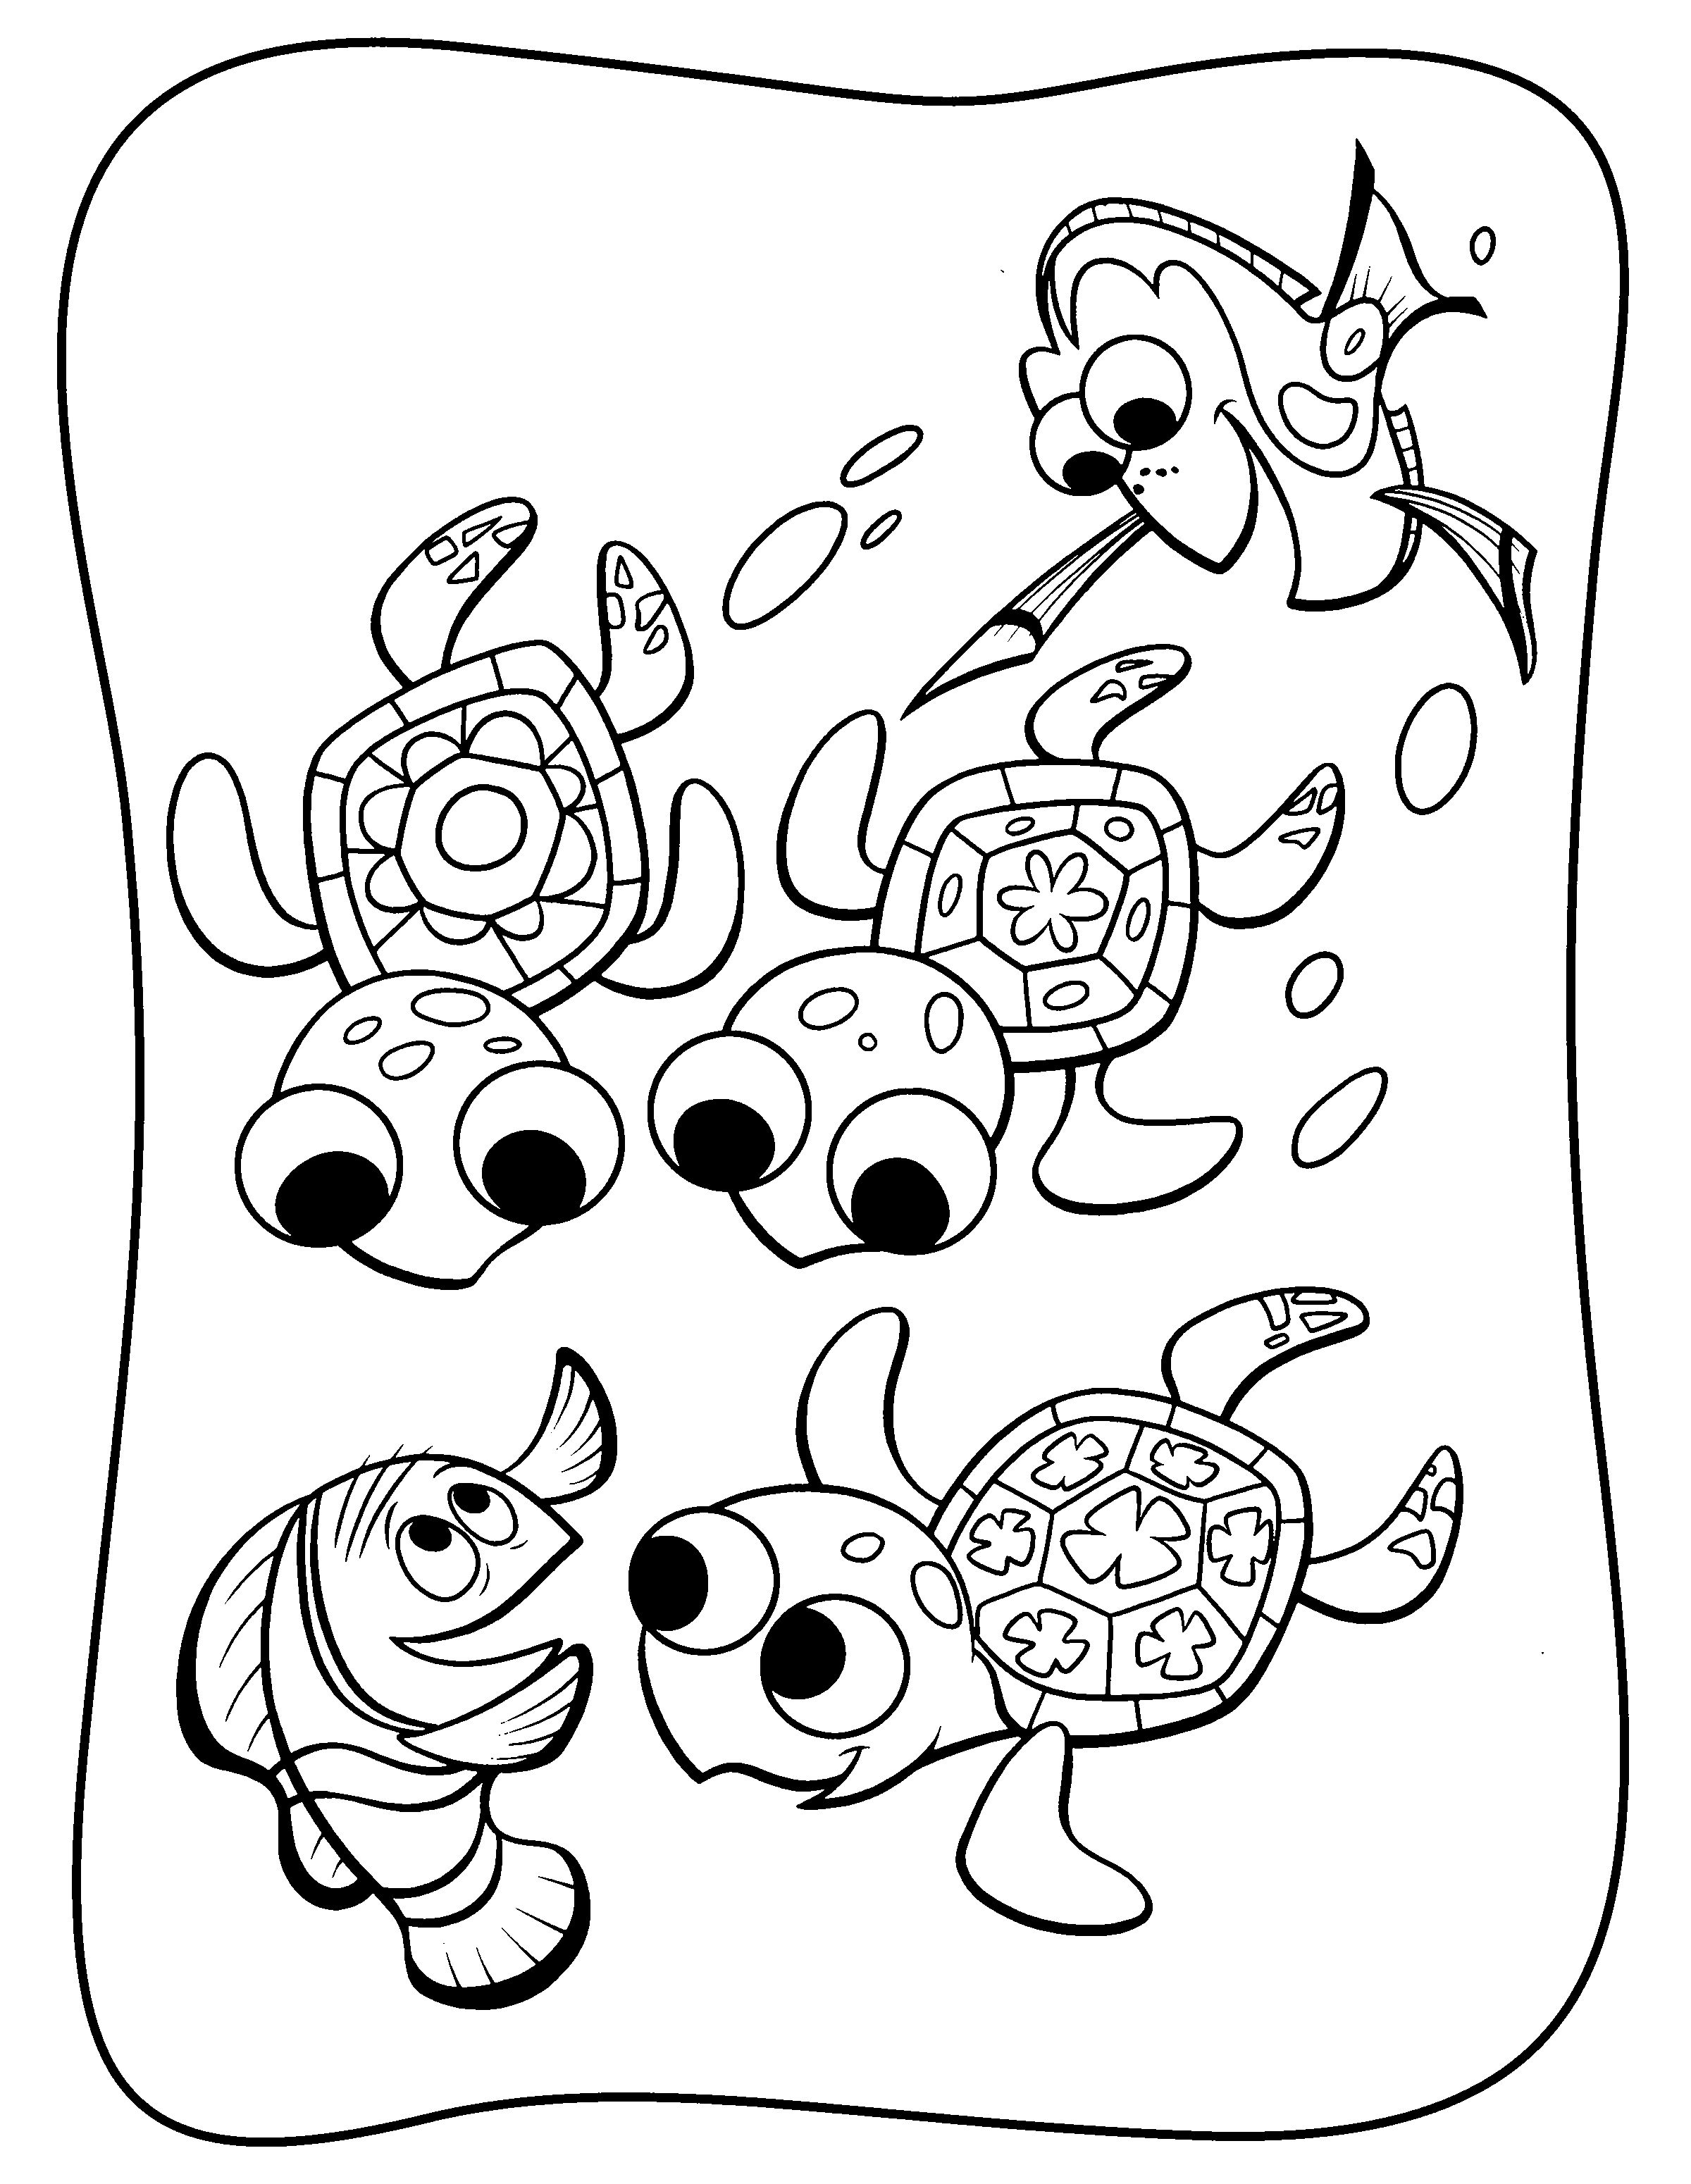 Dory coloring pages best coloring pages for kids Coloring book for toddlers